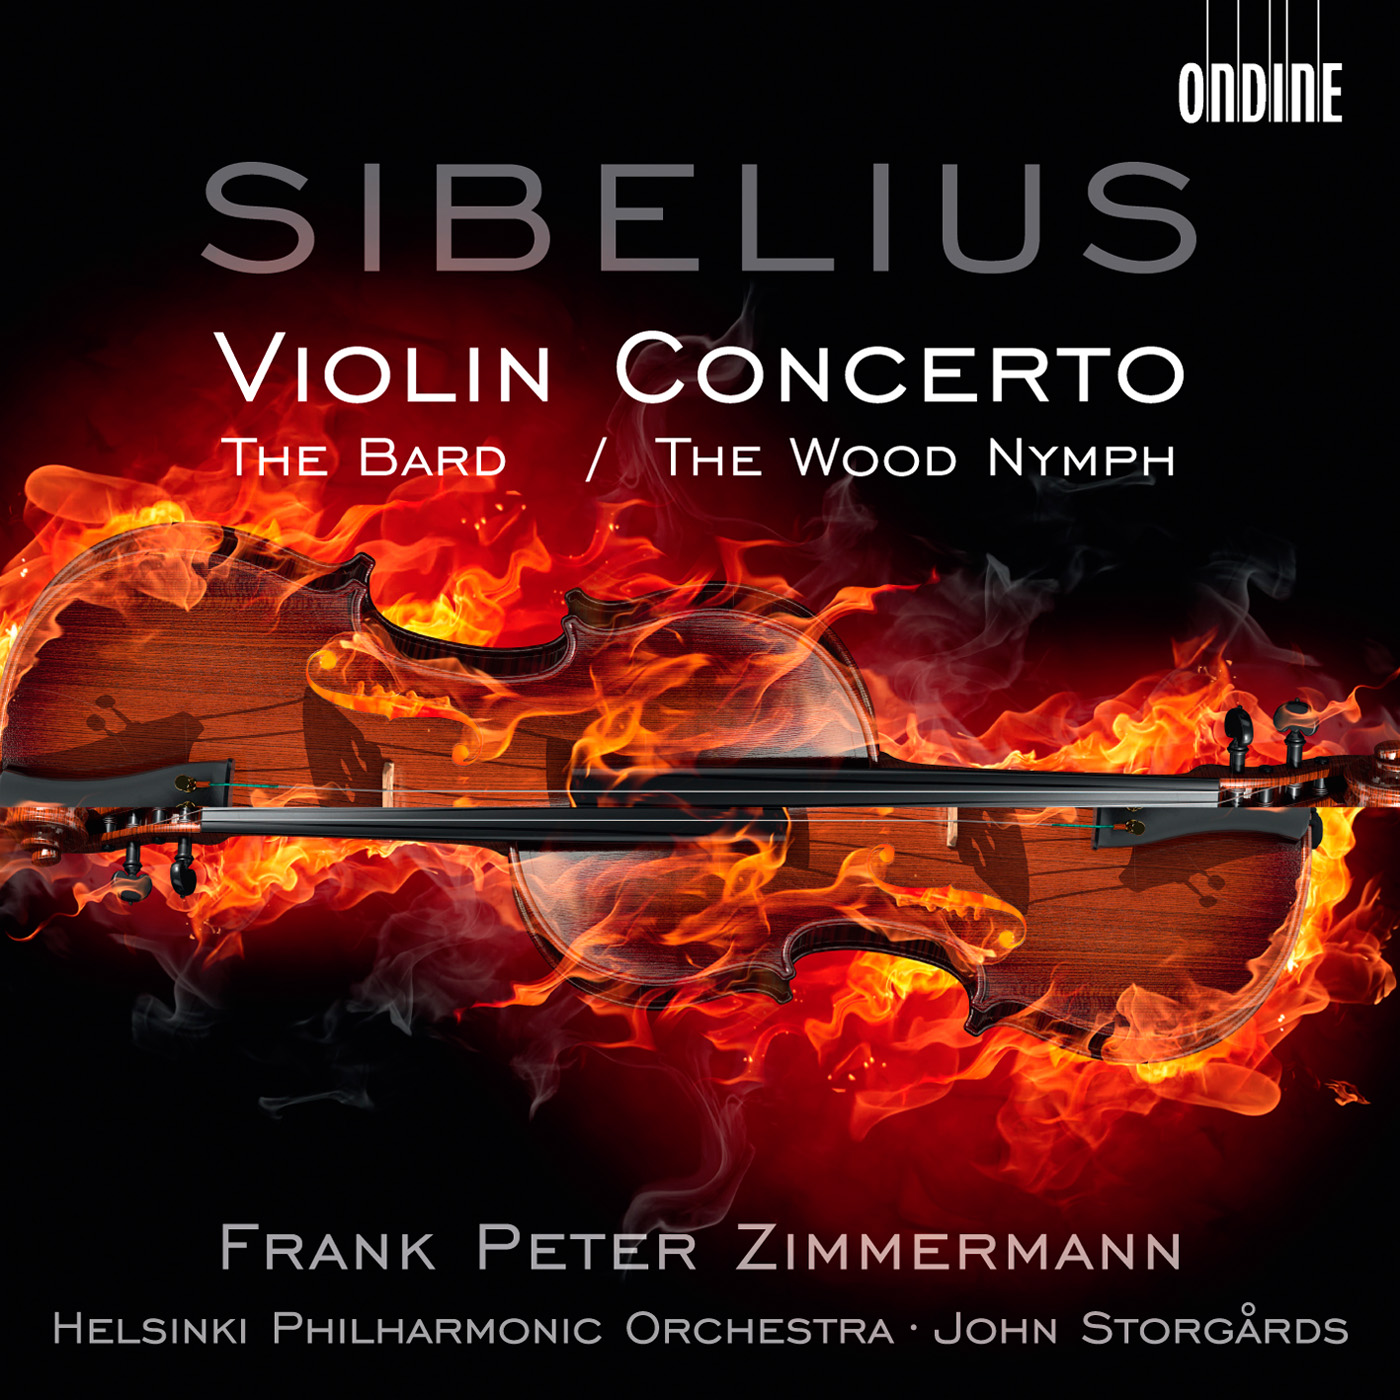 SIBELIUS, J.: Violin Concerto /  The Bard / The Wood Nymph (F.P. Zimmermann, Helsinki Philharmonic, Storgards)